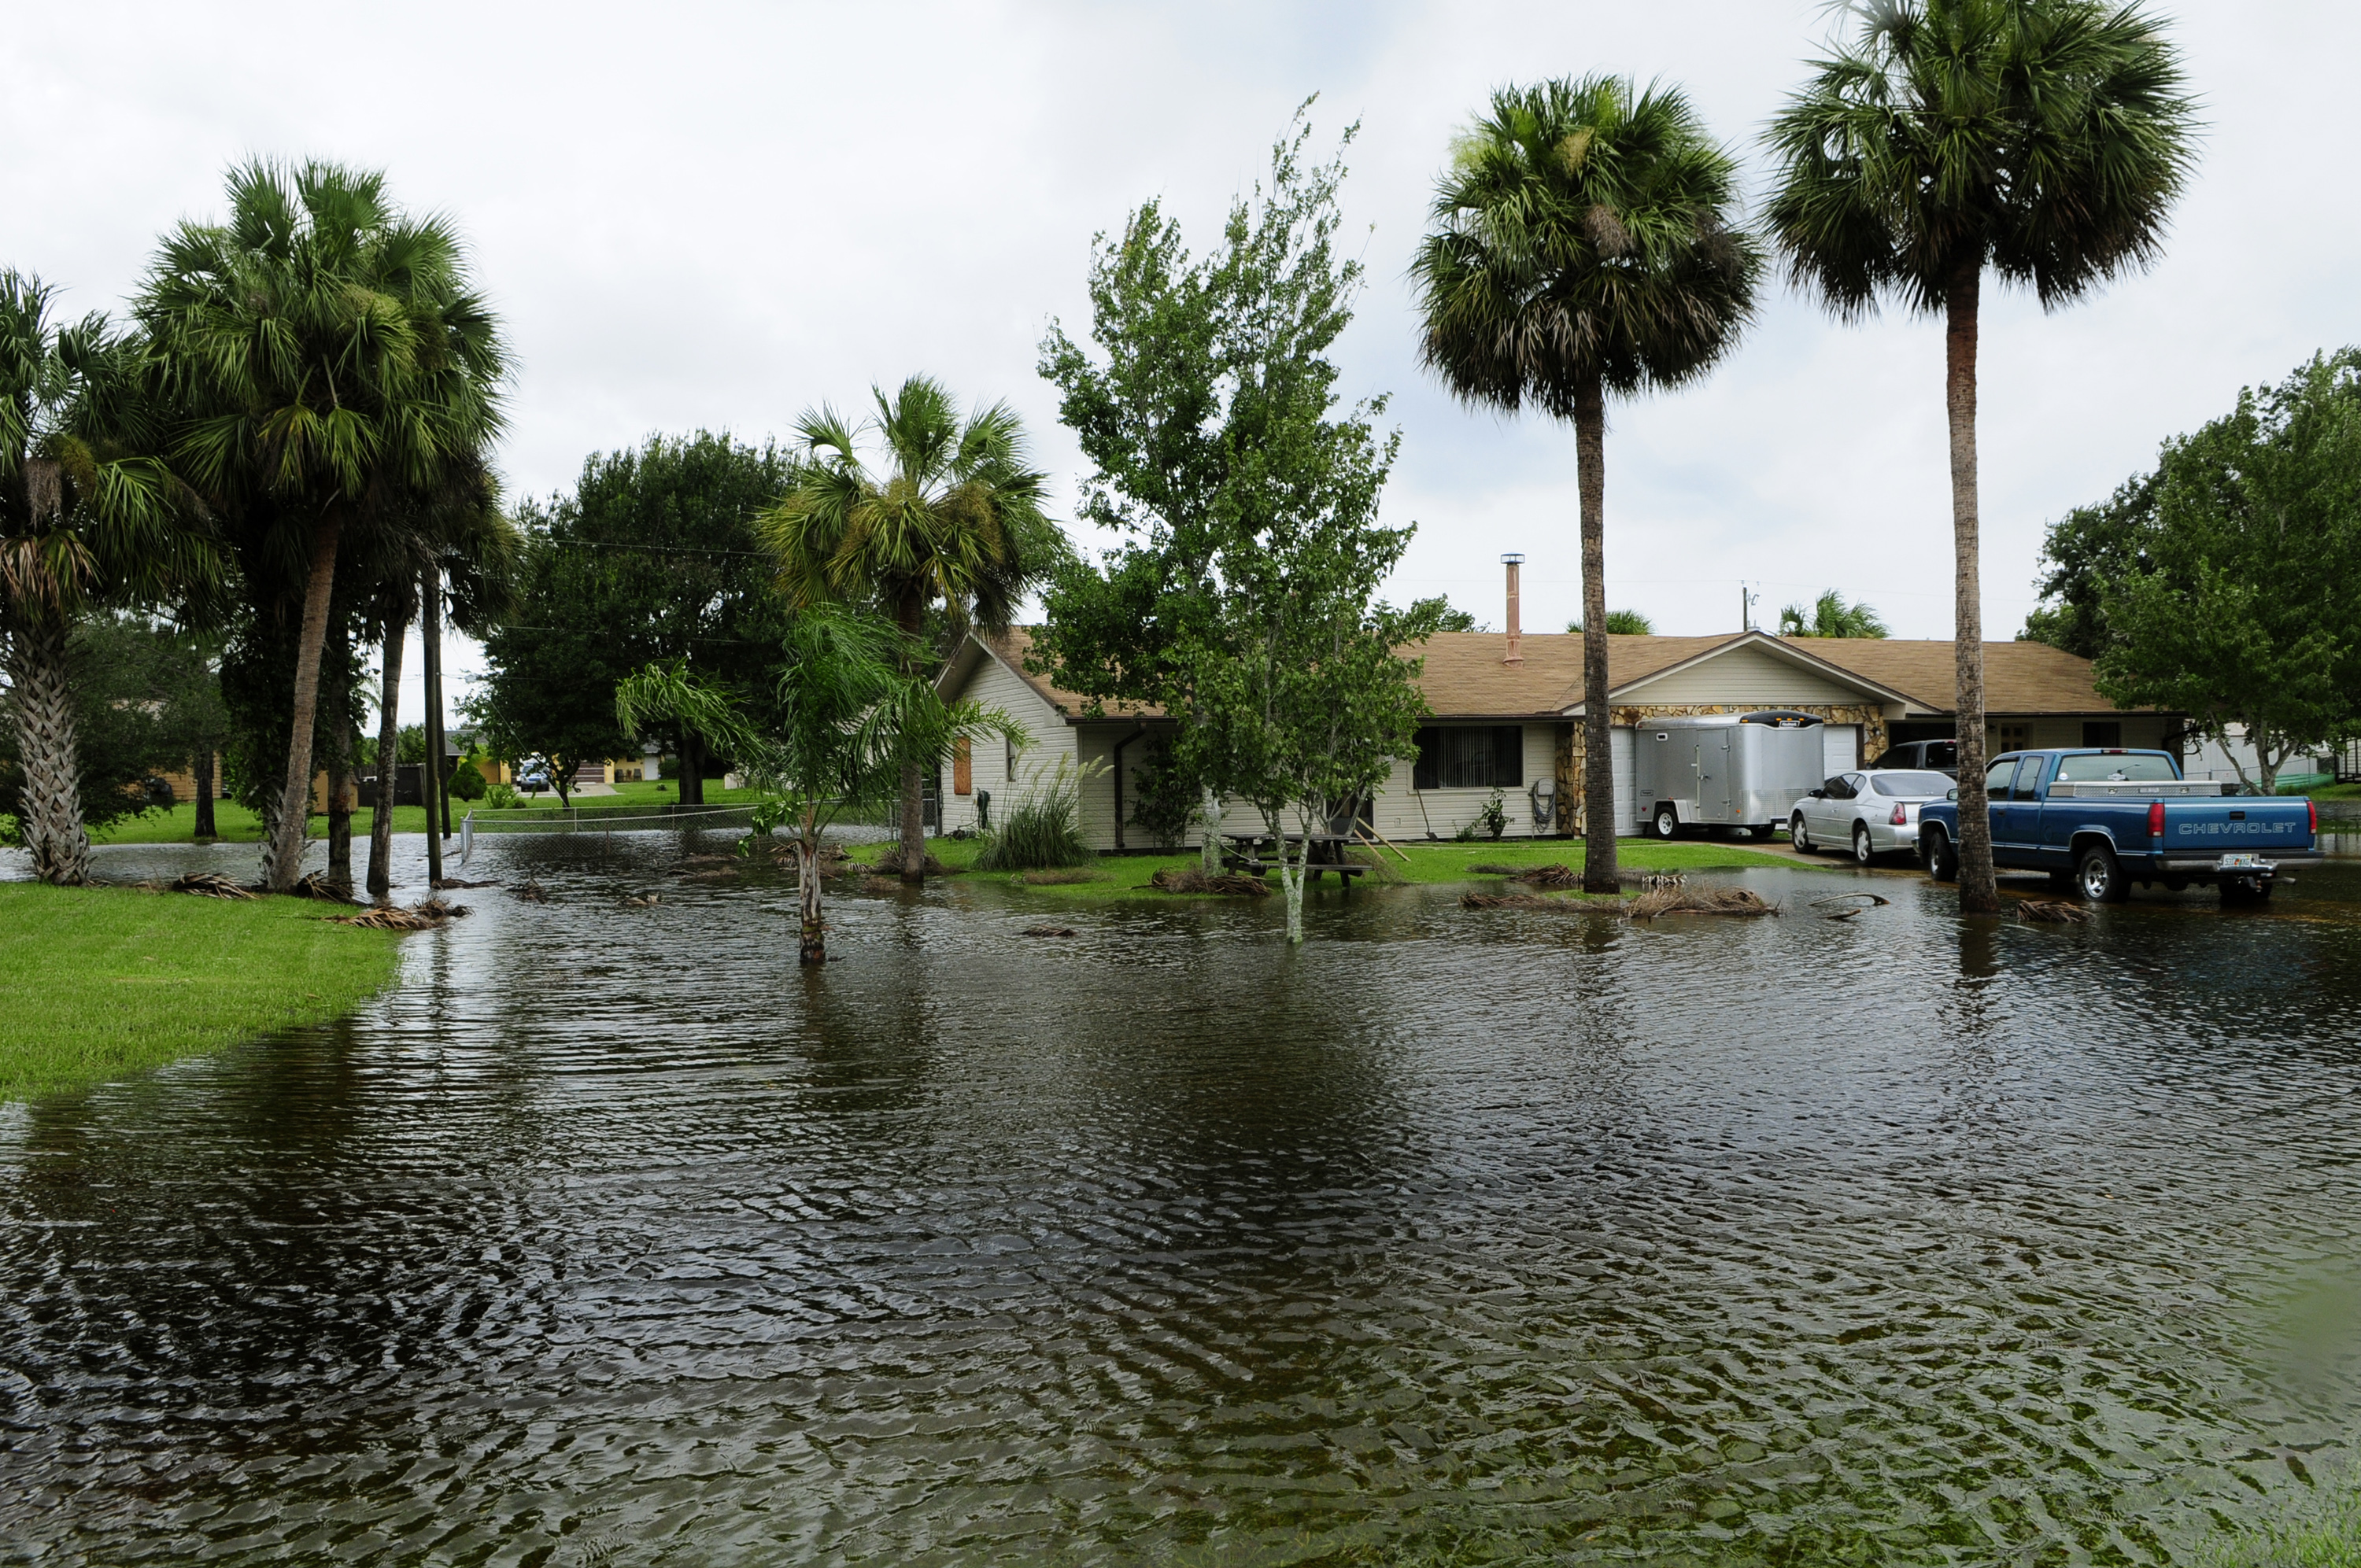 FEMA_-_37590_-_Community_Flooding_in_Florida.jpg